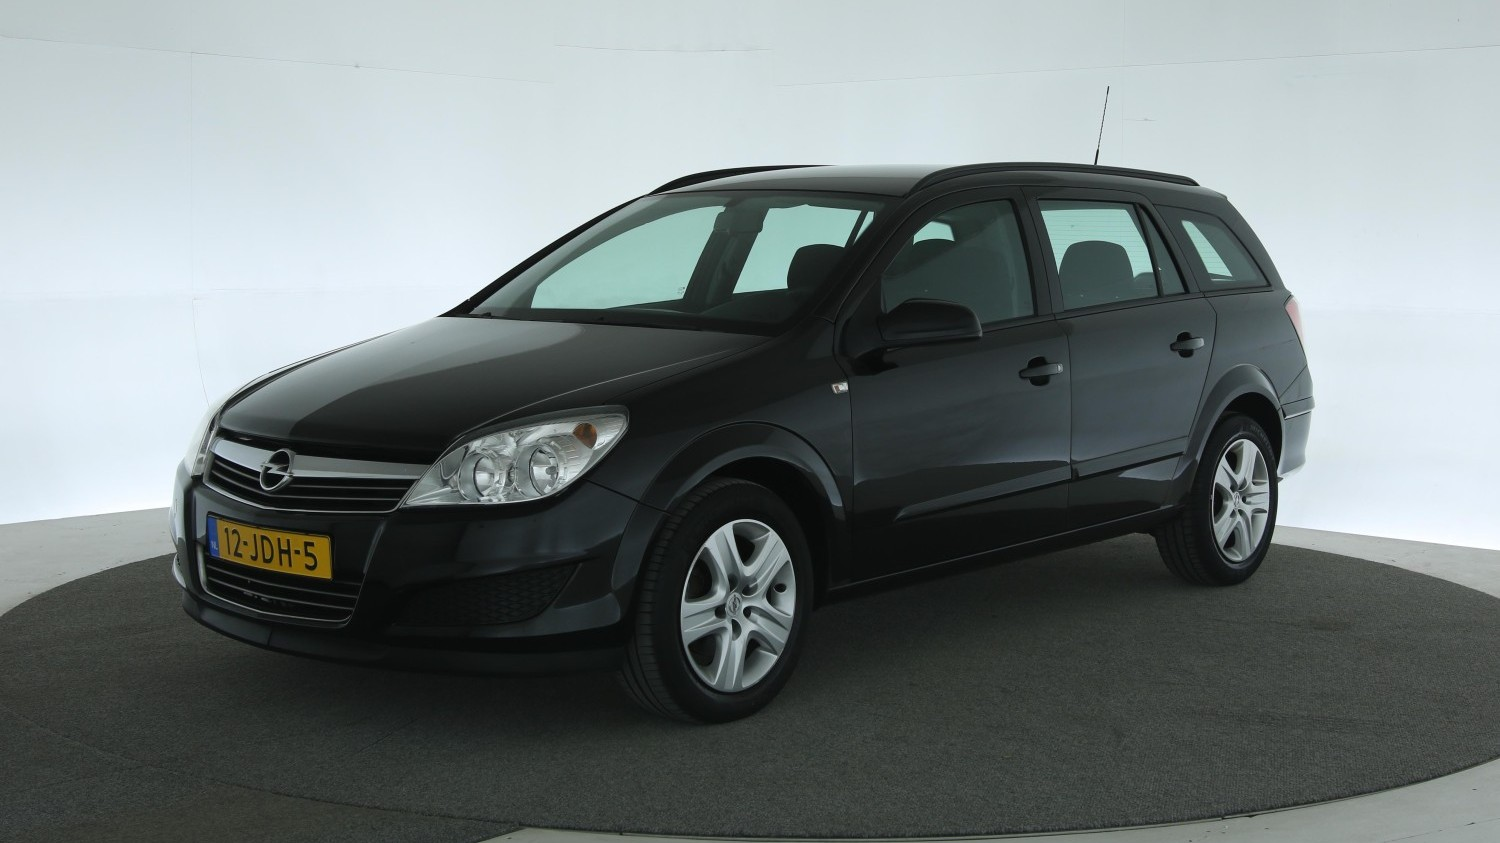 Opel Astra Station 2009 12-JDH-5 1